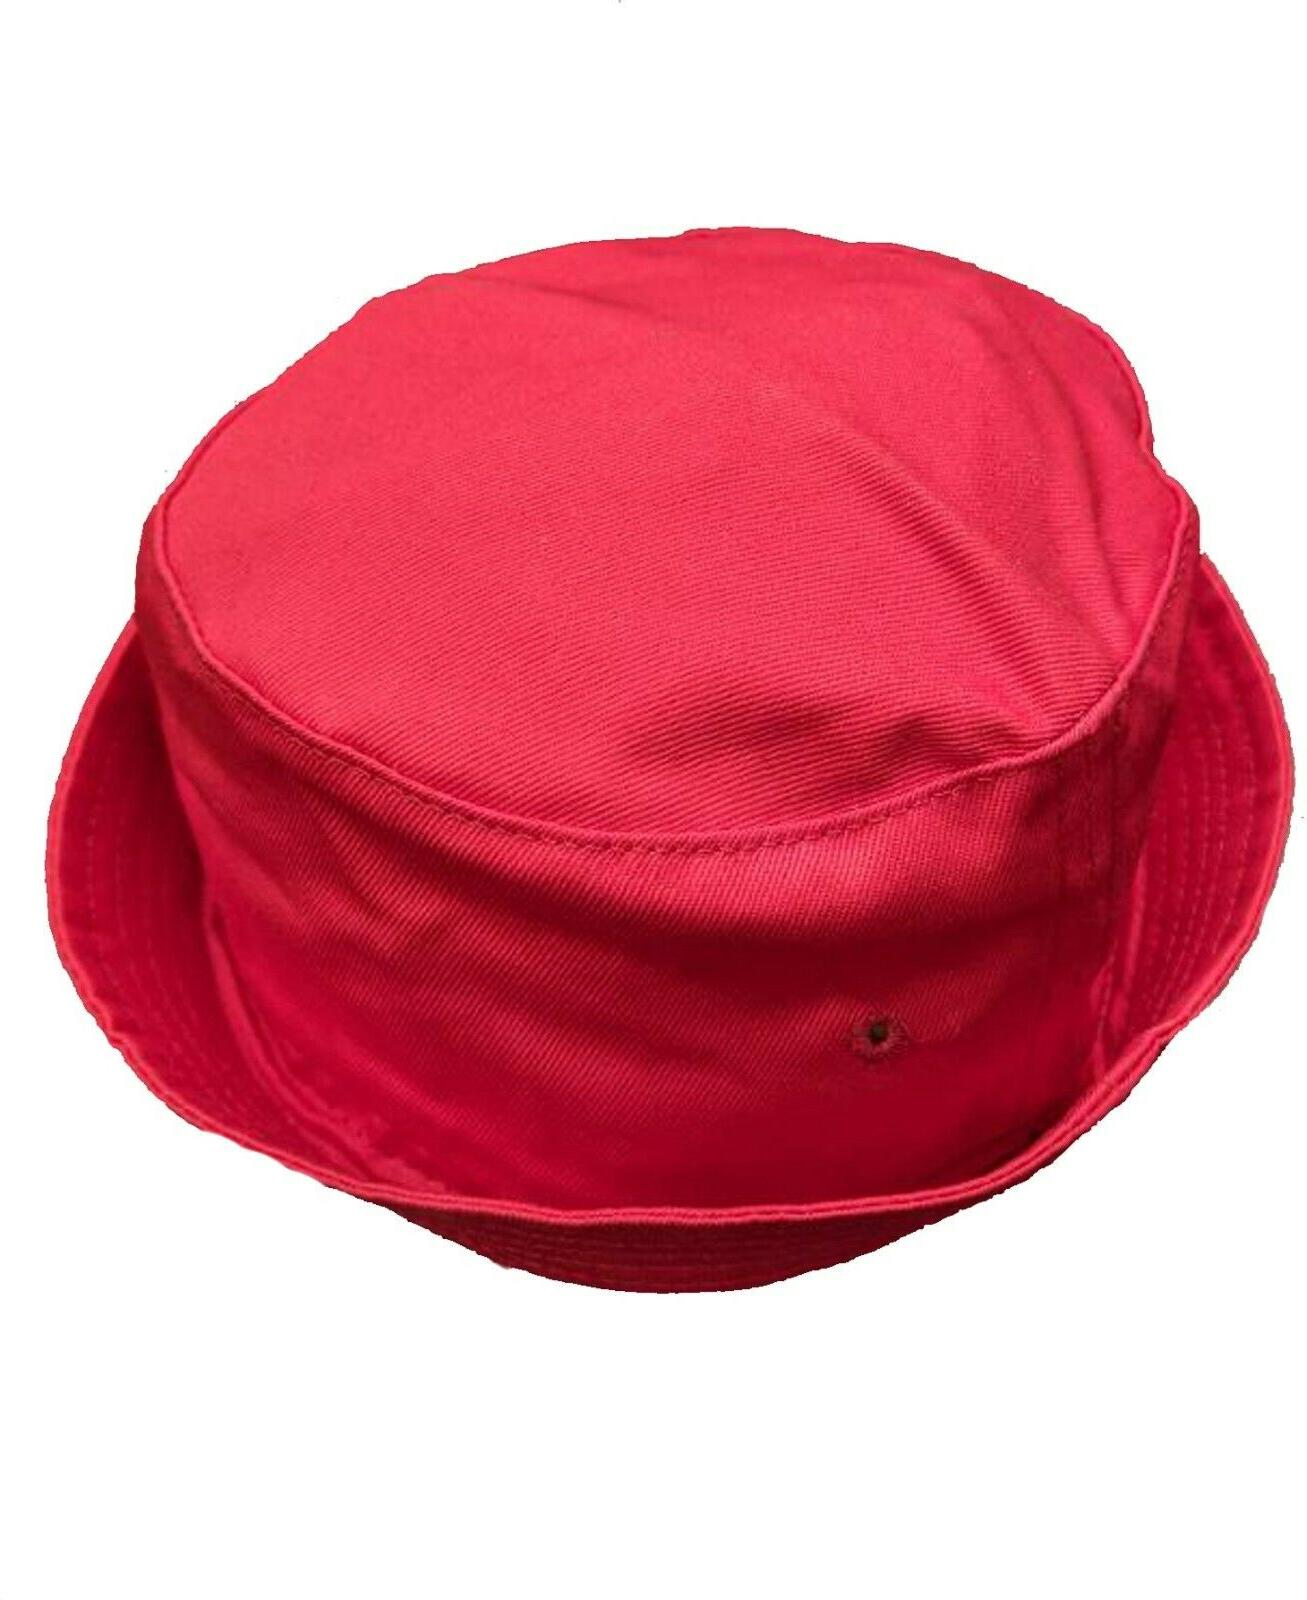 Red Canvas Bucket for Baby or